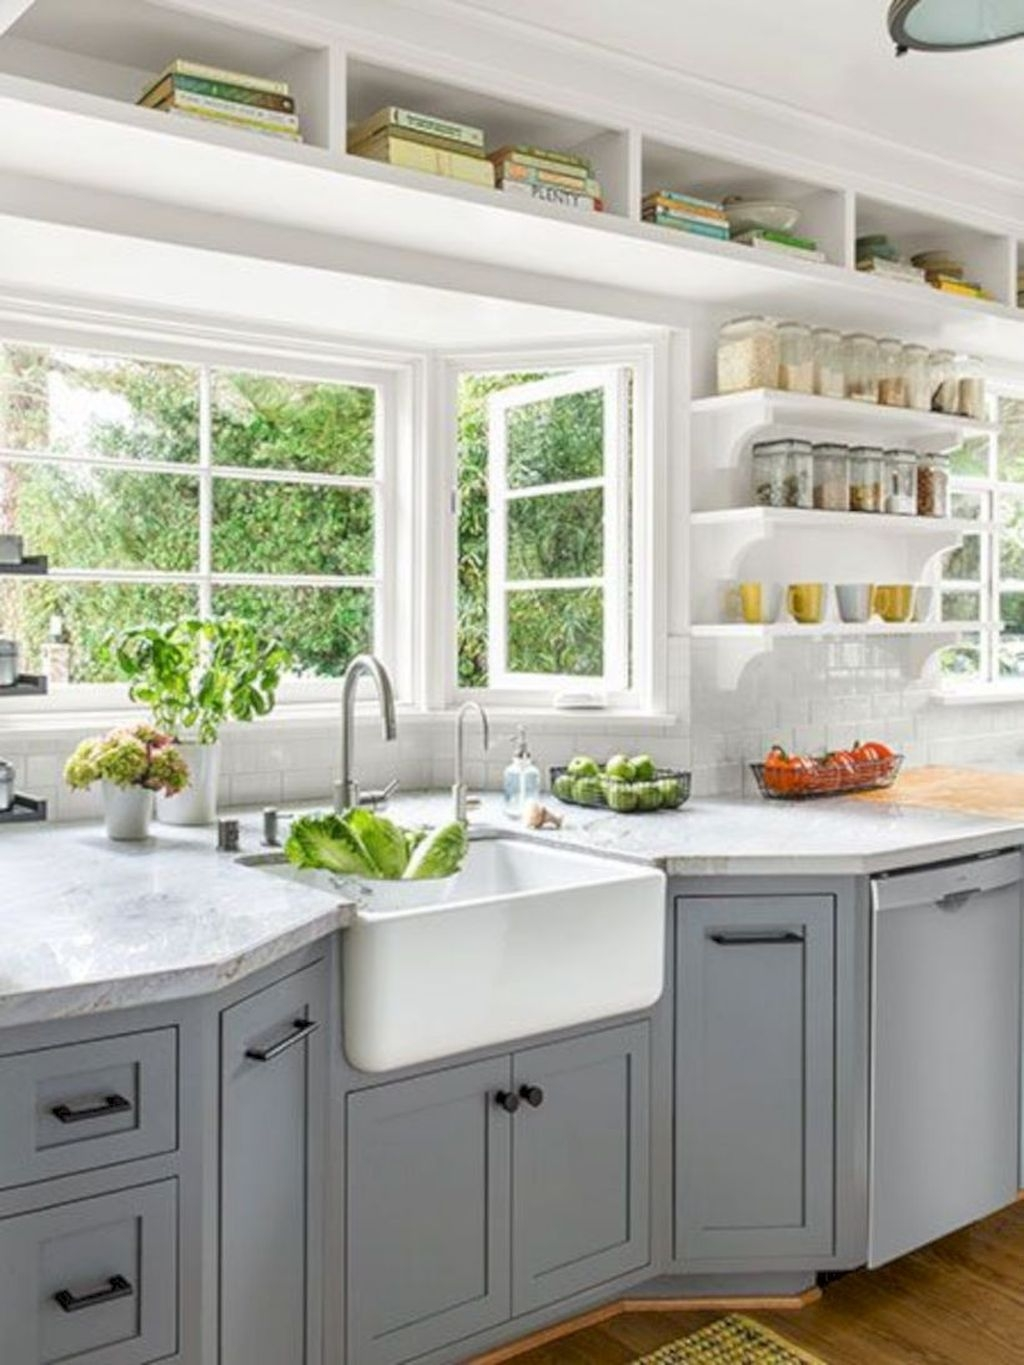 Best Ways To Prepare For A Kitchen Remodeling Or Renovation Project Ideas24